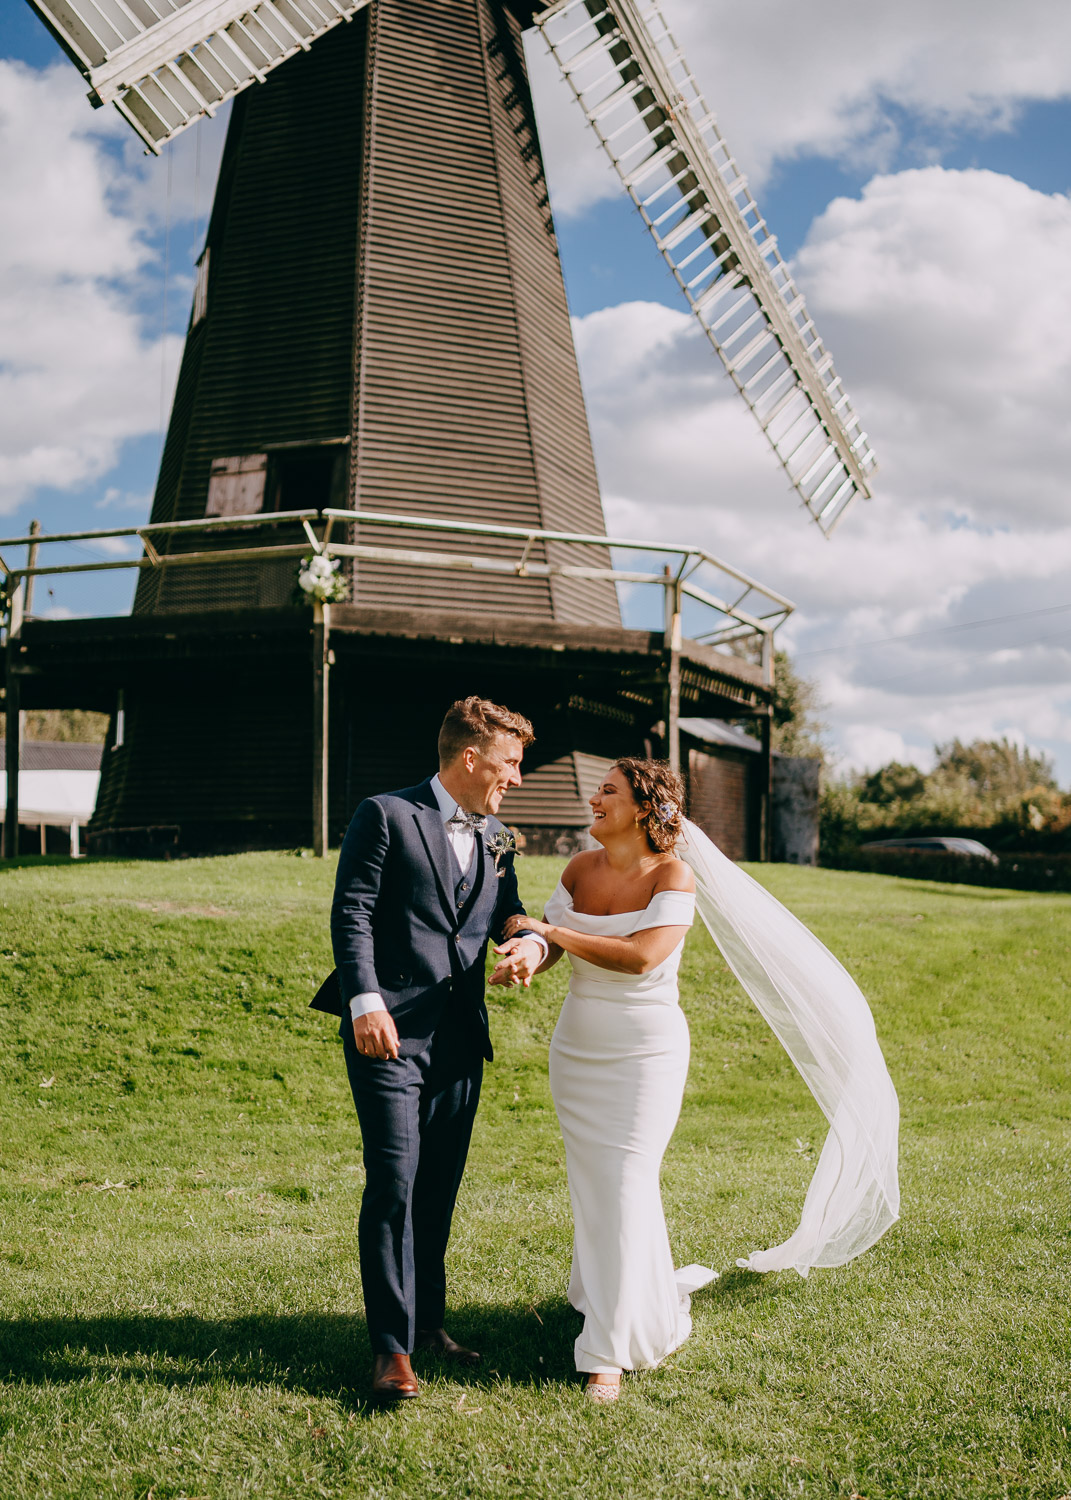 Canterbury Wedding Photographer - Natural and Quirky